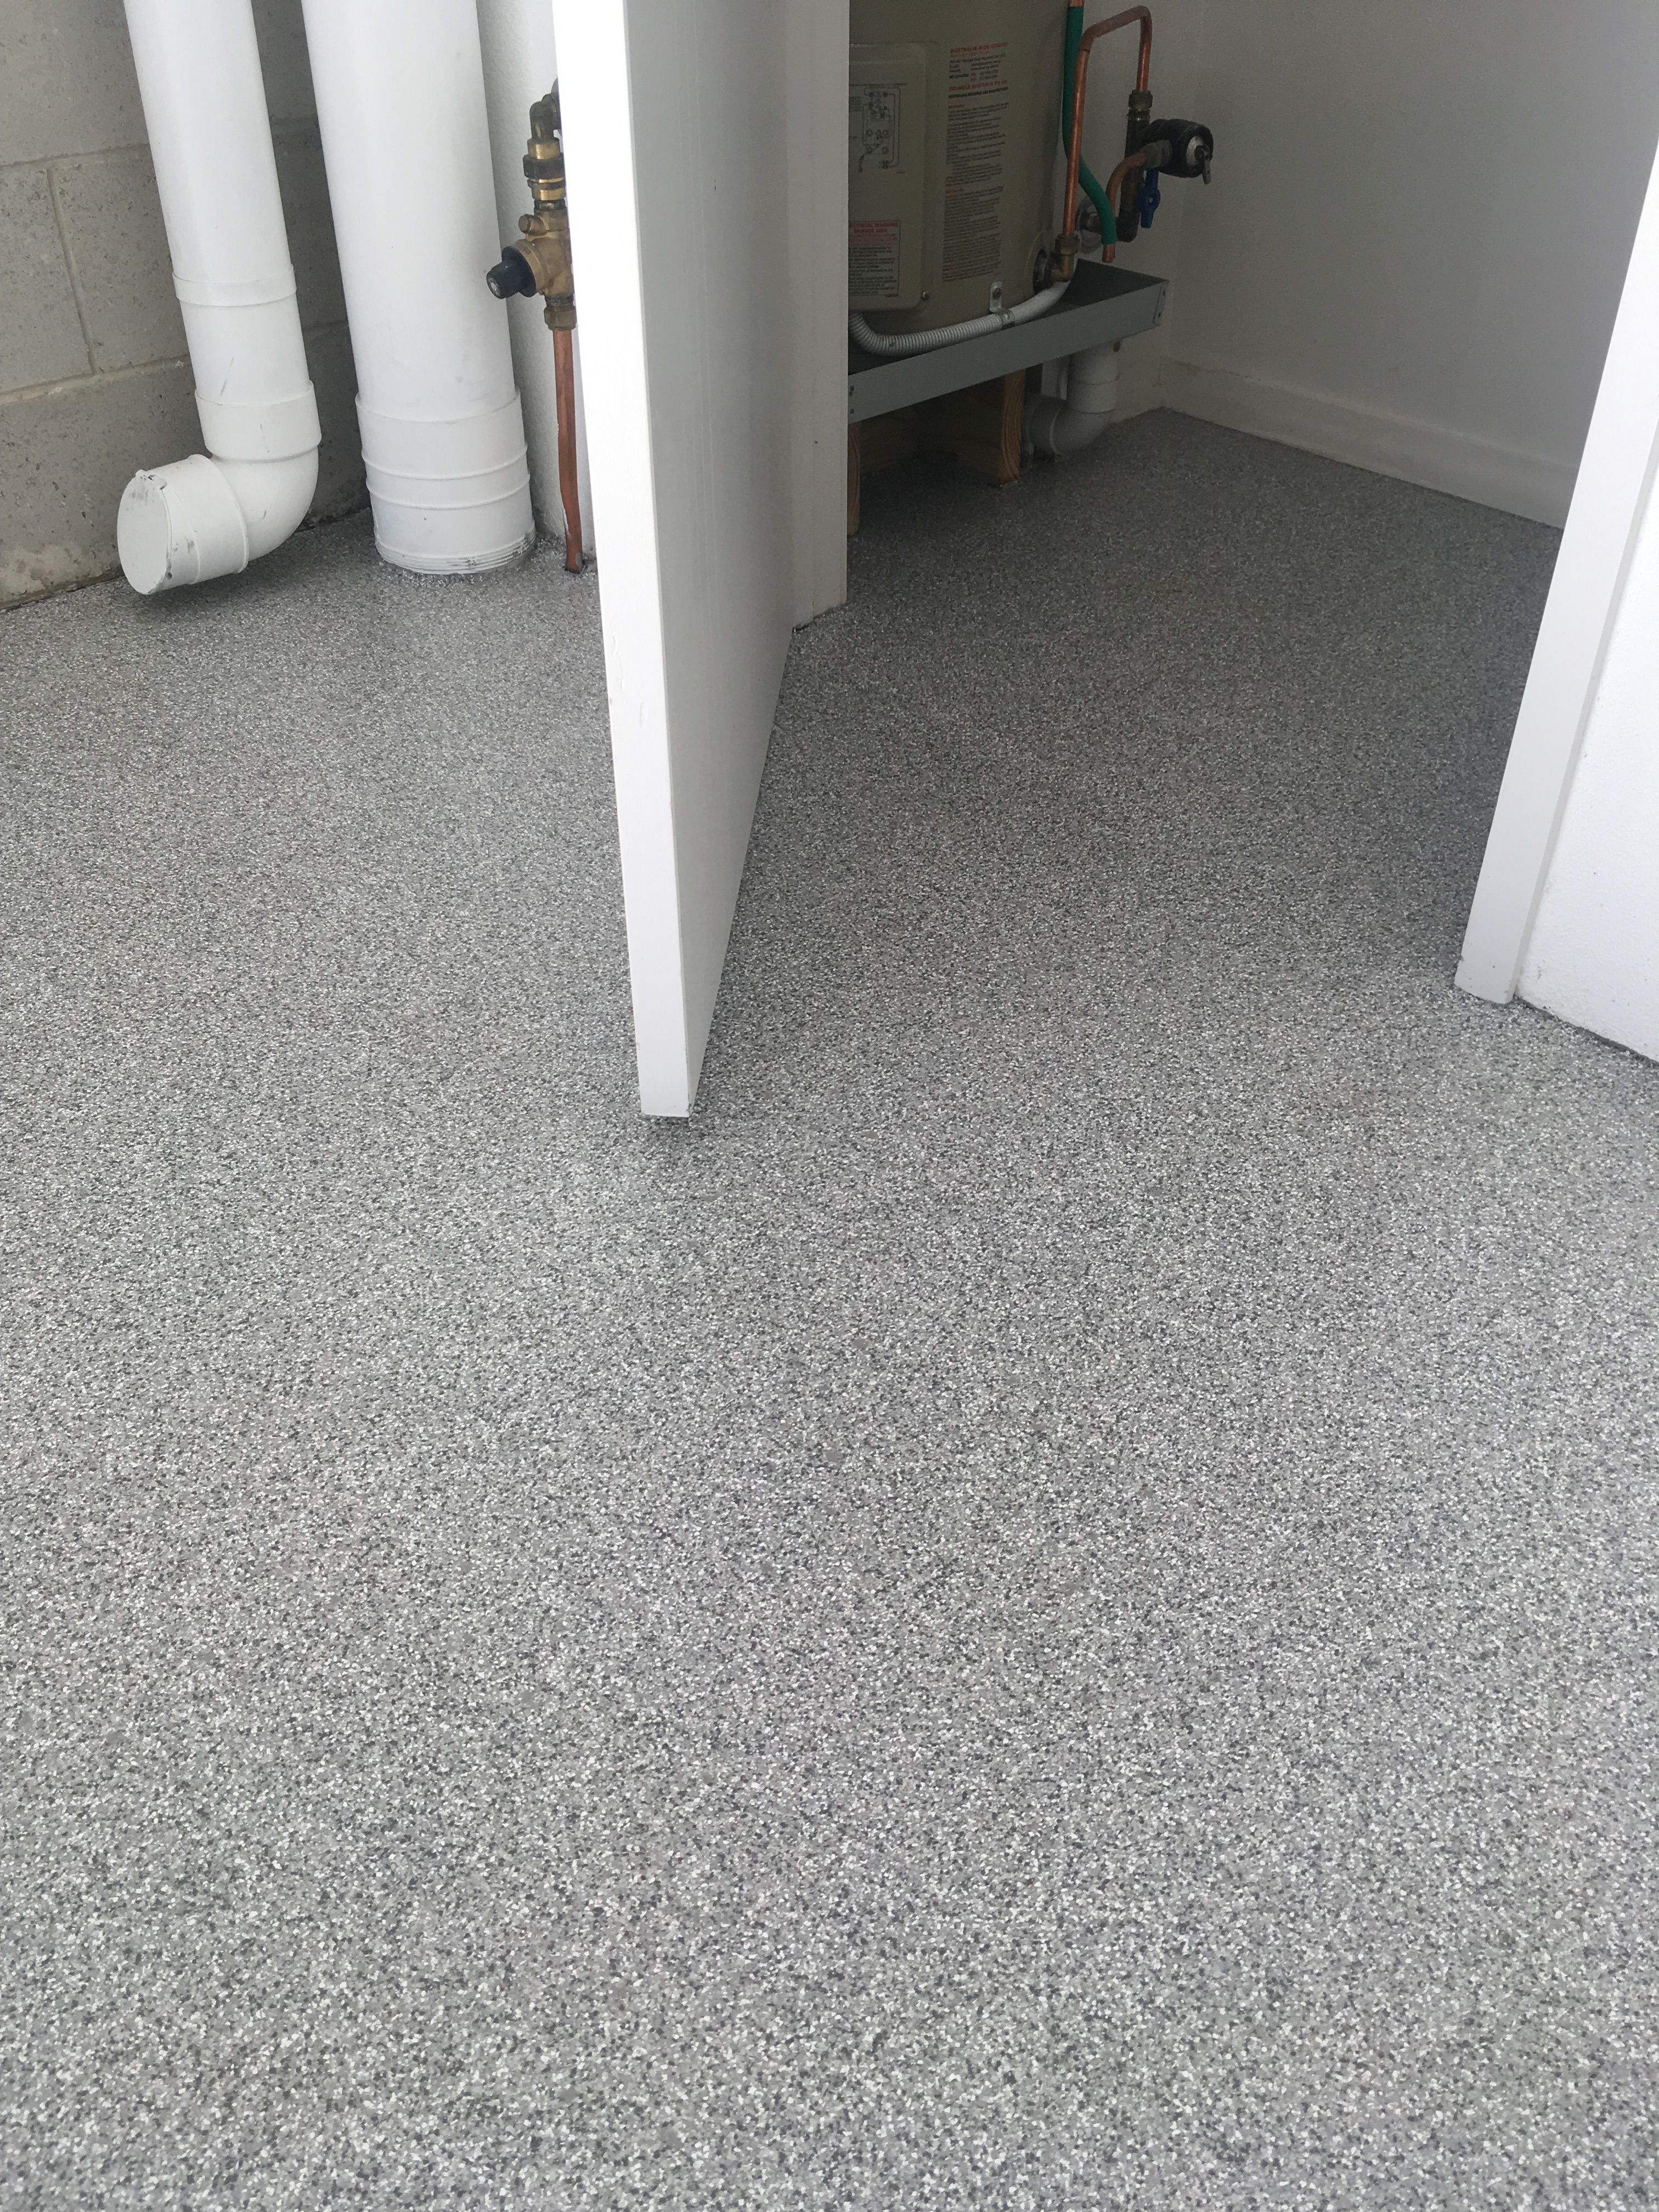 Epoxy Flooring By The Garage Floor Co At Noosa This